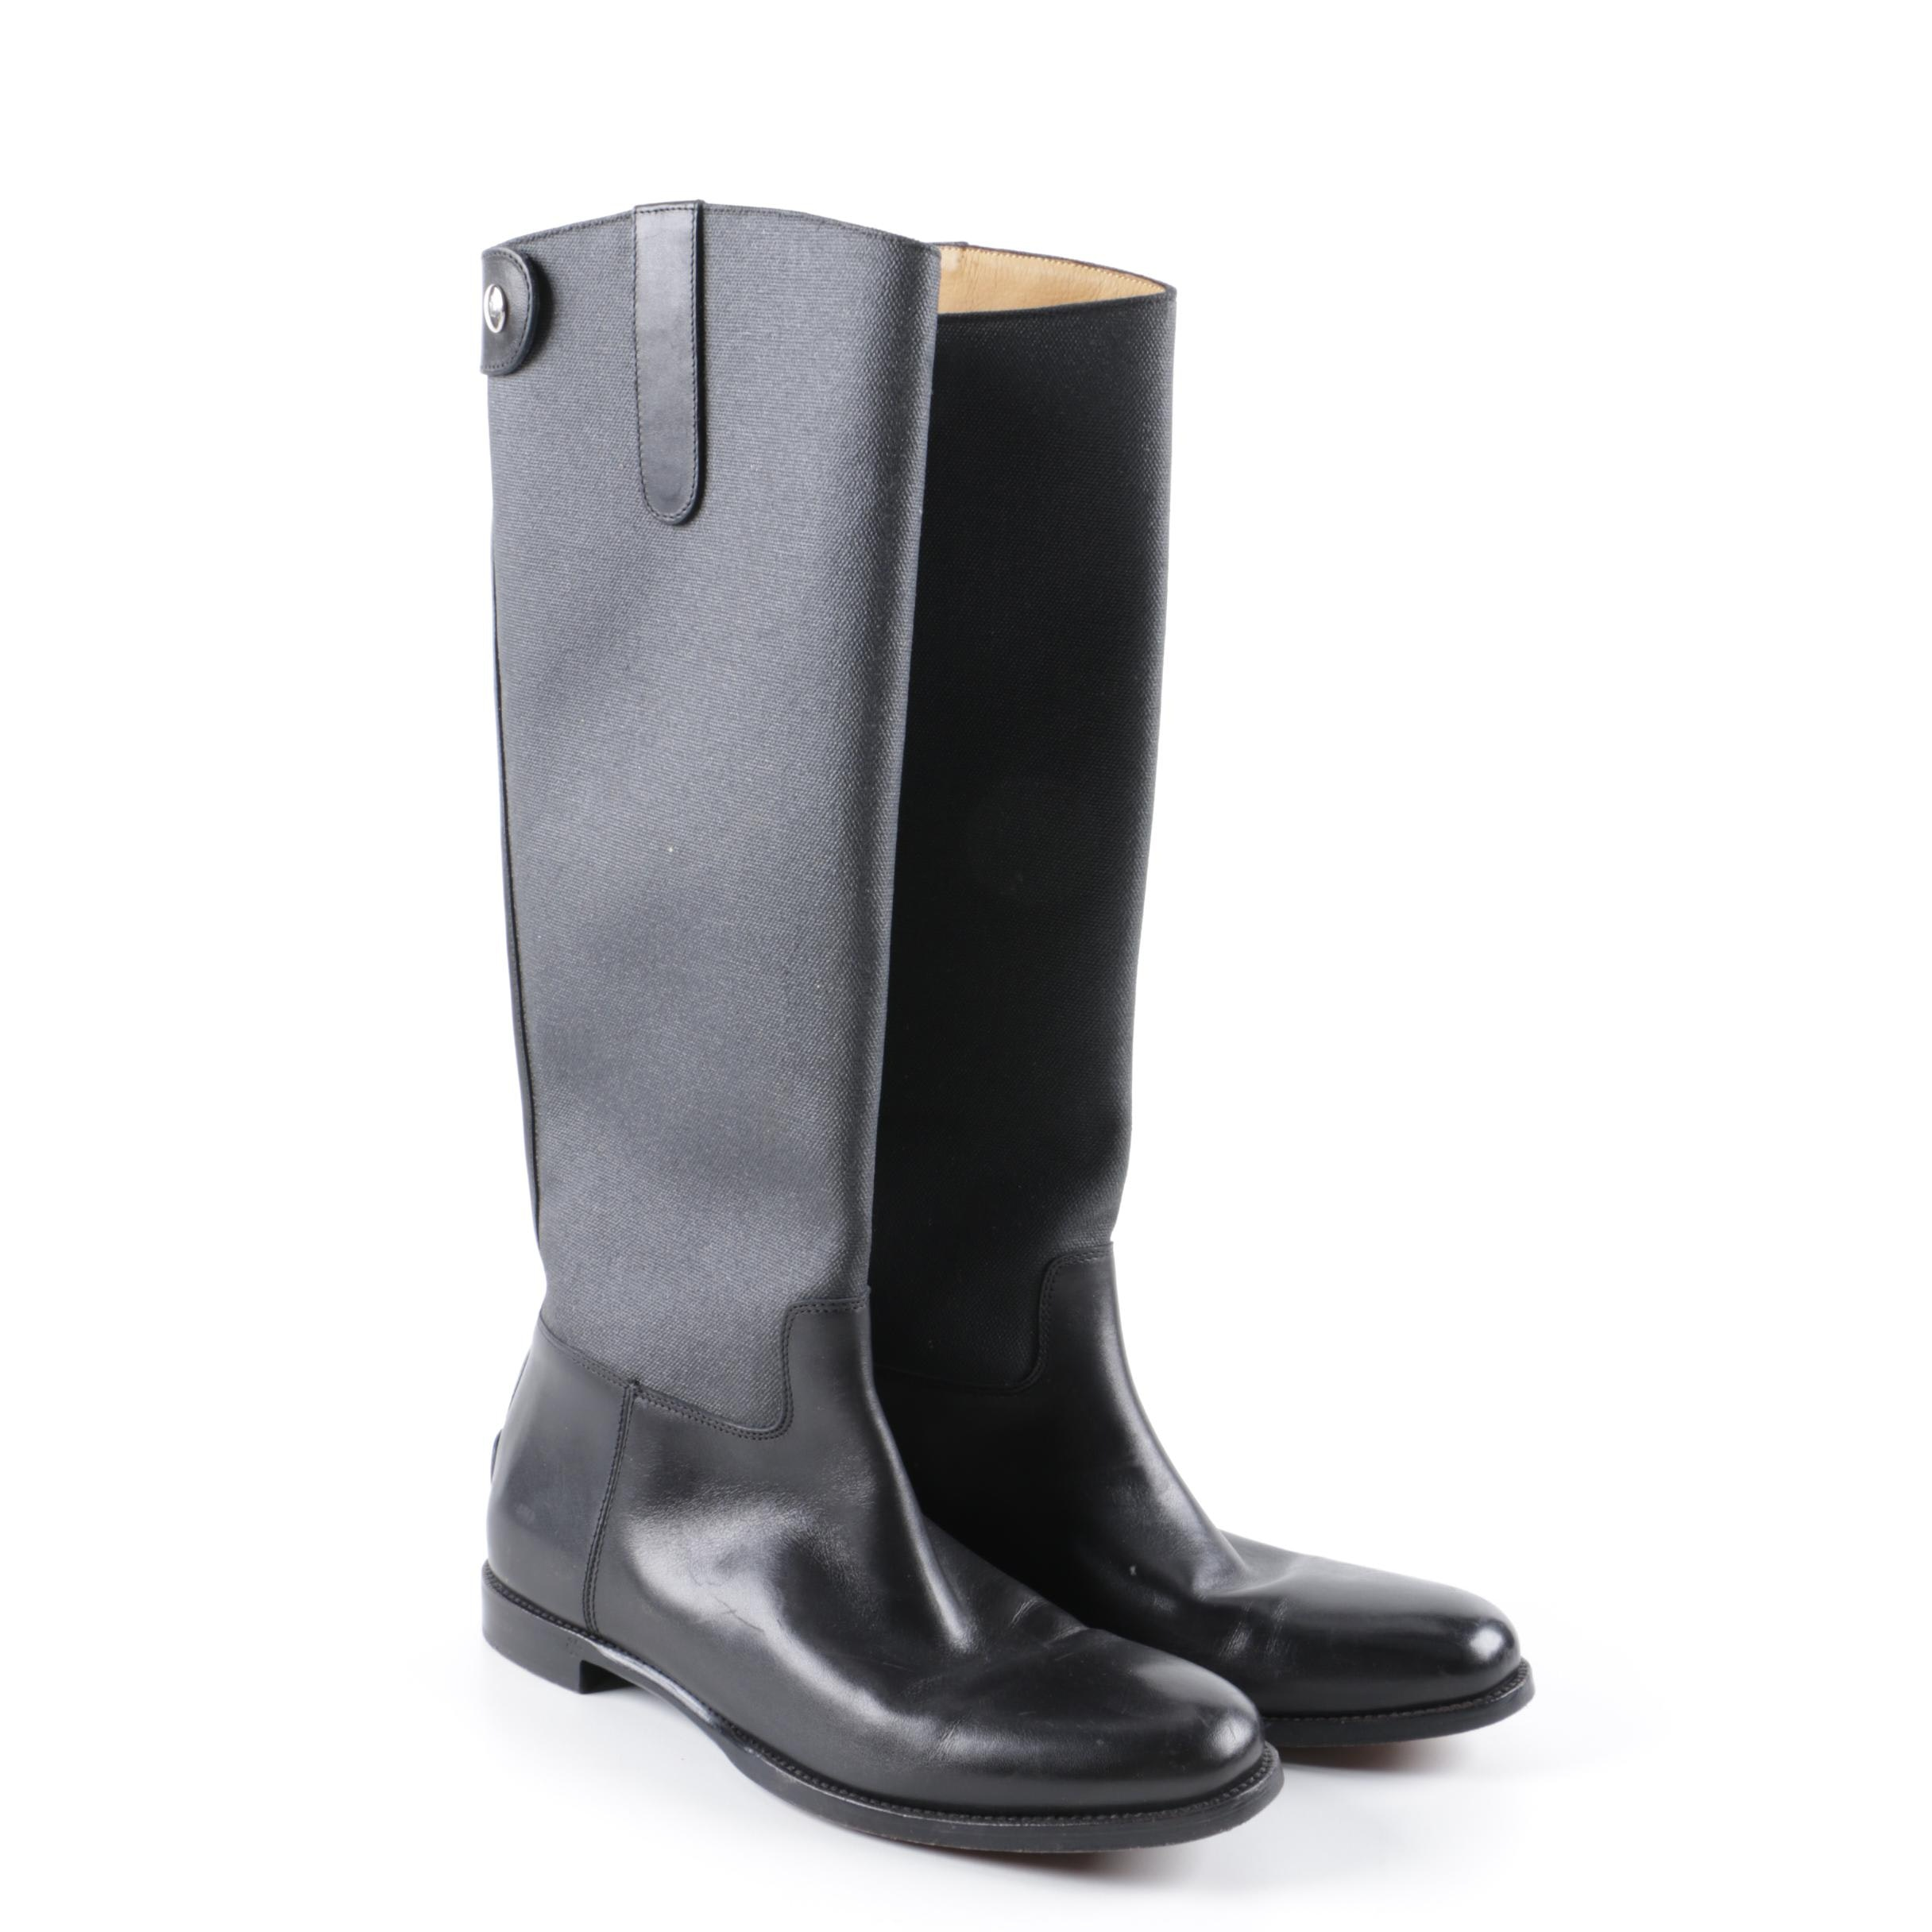 Women's Ralph Lauren Collection Black Leather and Canvas Riding Boots